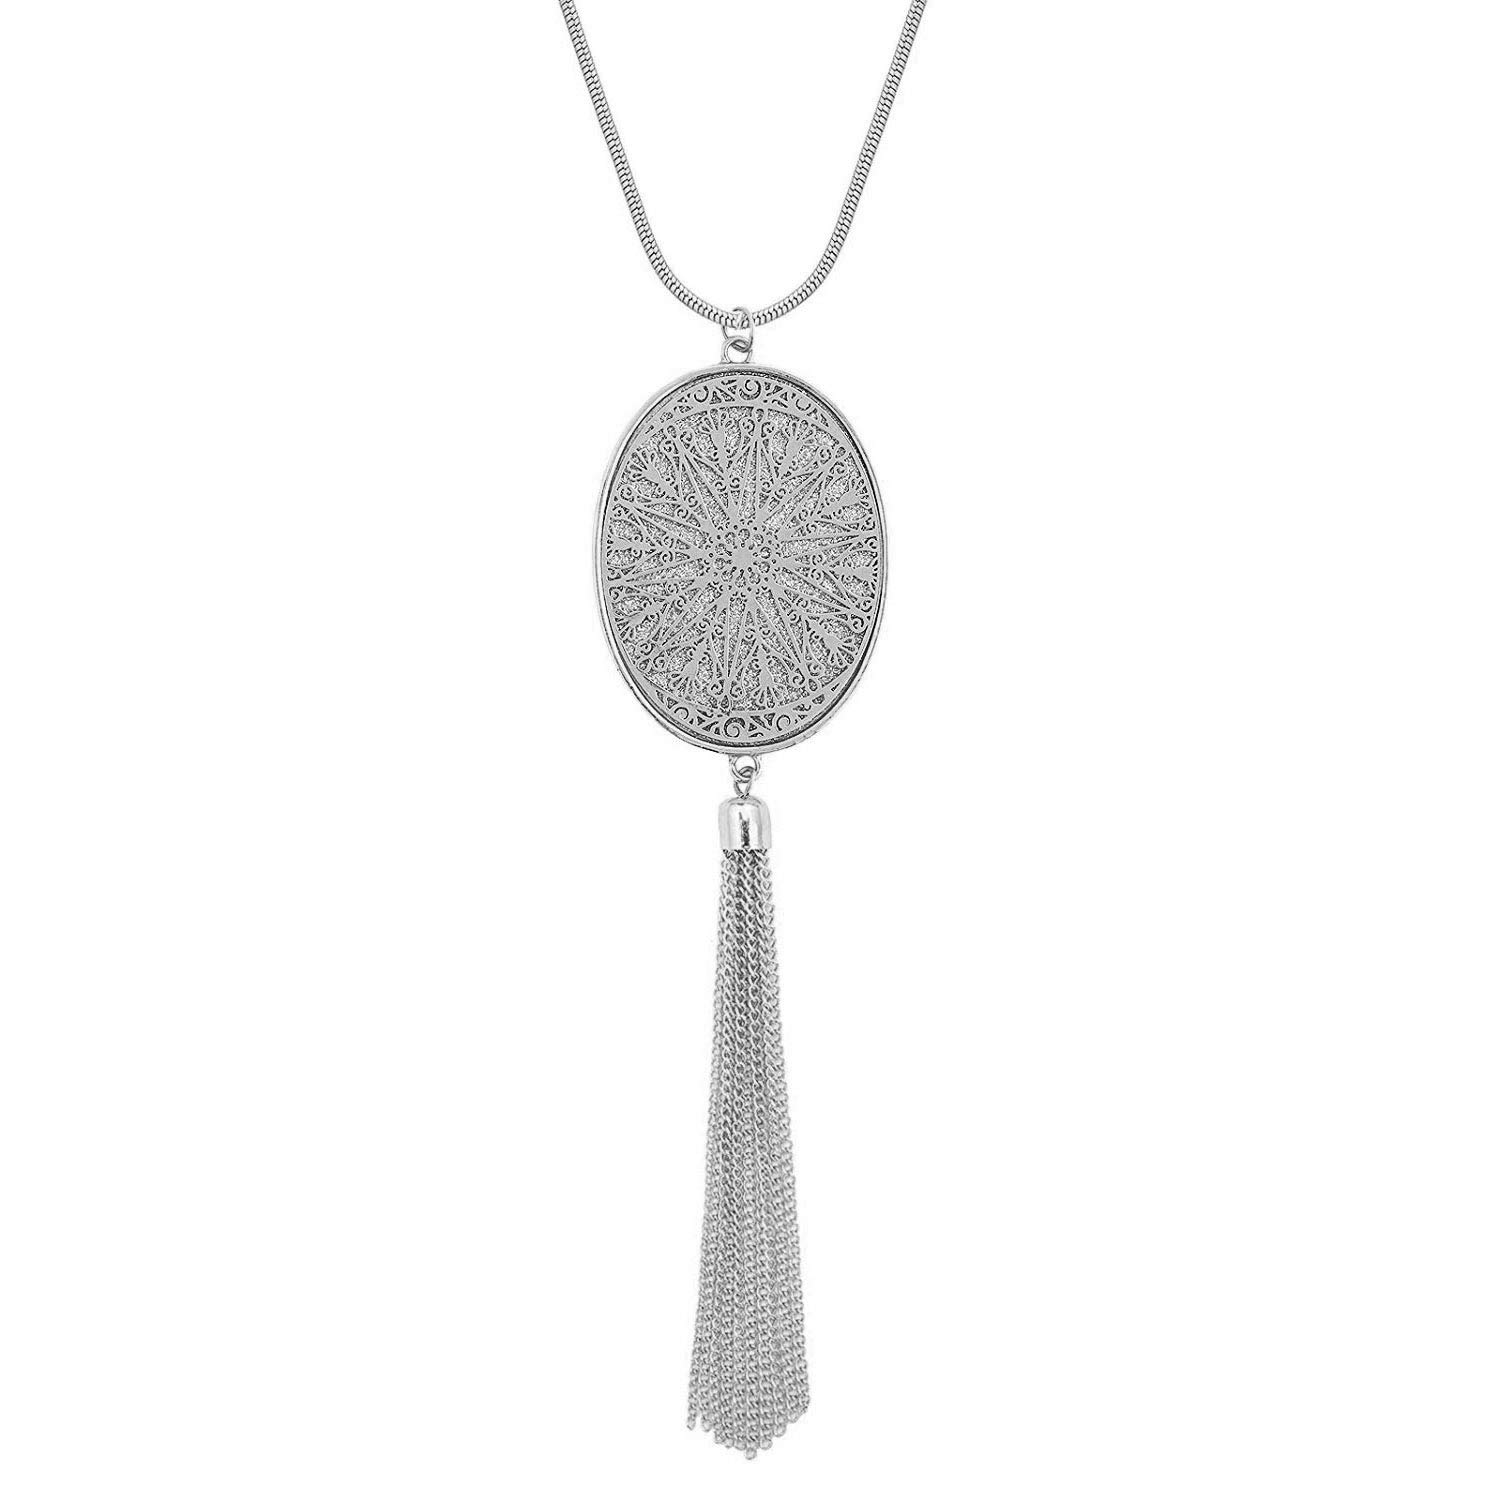 Chaomingzhen Oval Pendant Enhancers Long Tassel Fringe Necklace for Women White Gold Plated by Chaomingzhen